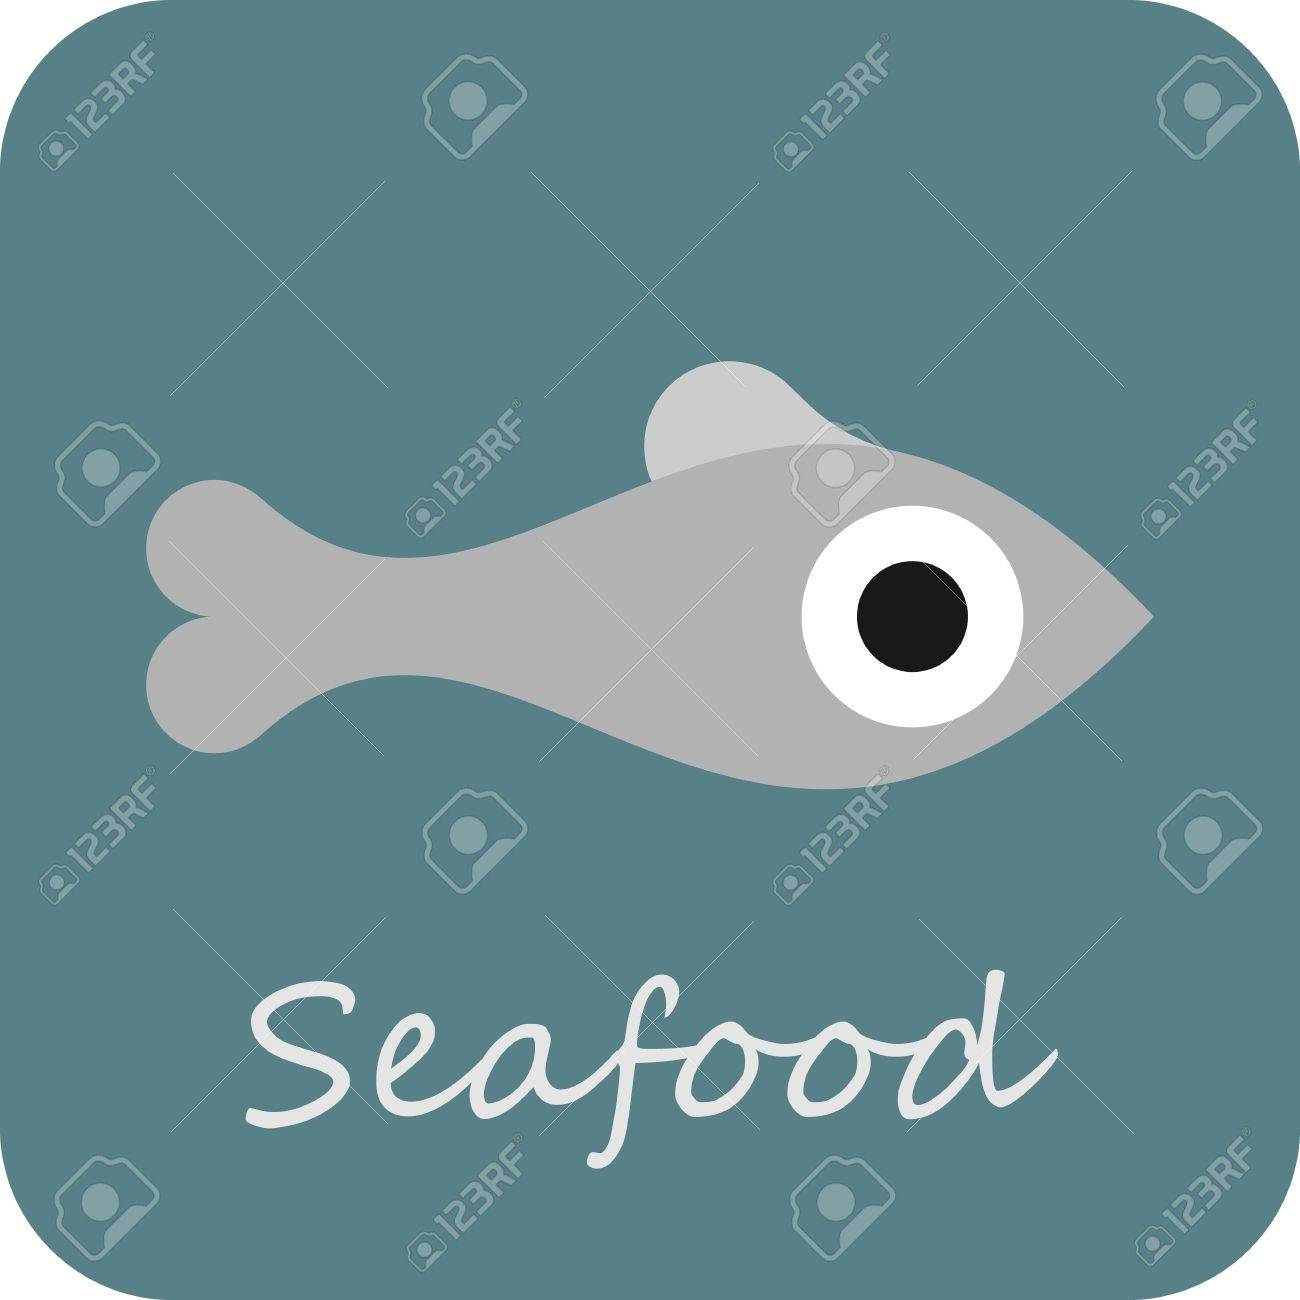 Freshwater fish clipart - Fresh Water Fish Seafood Isolated Icon Sign Symbol Of Fish On Blue